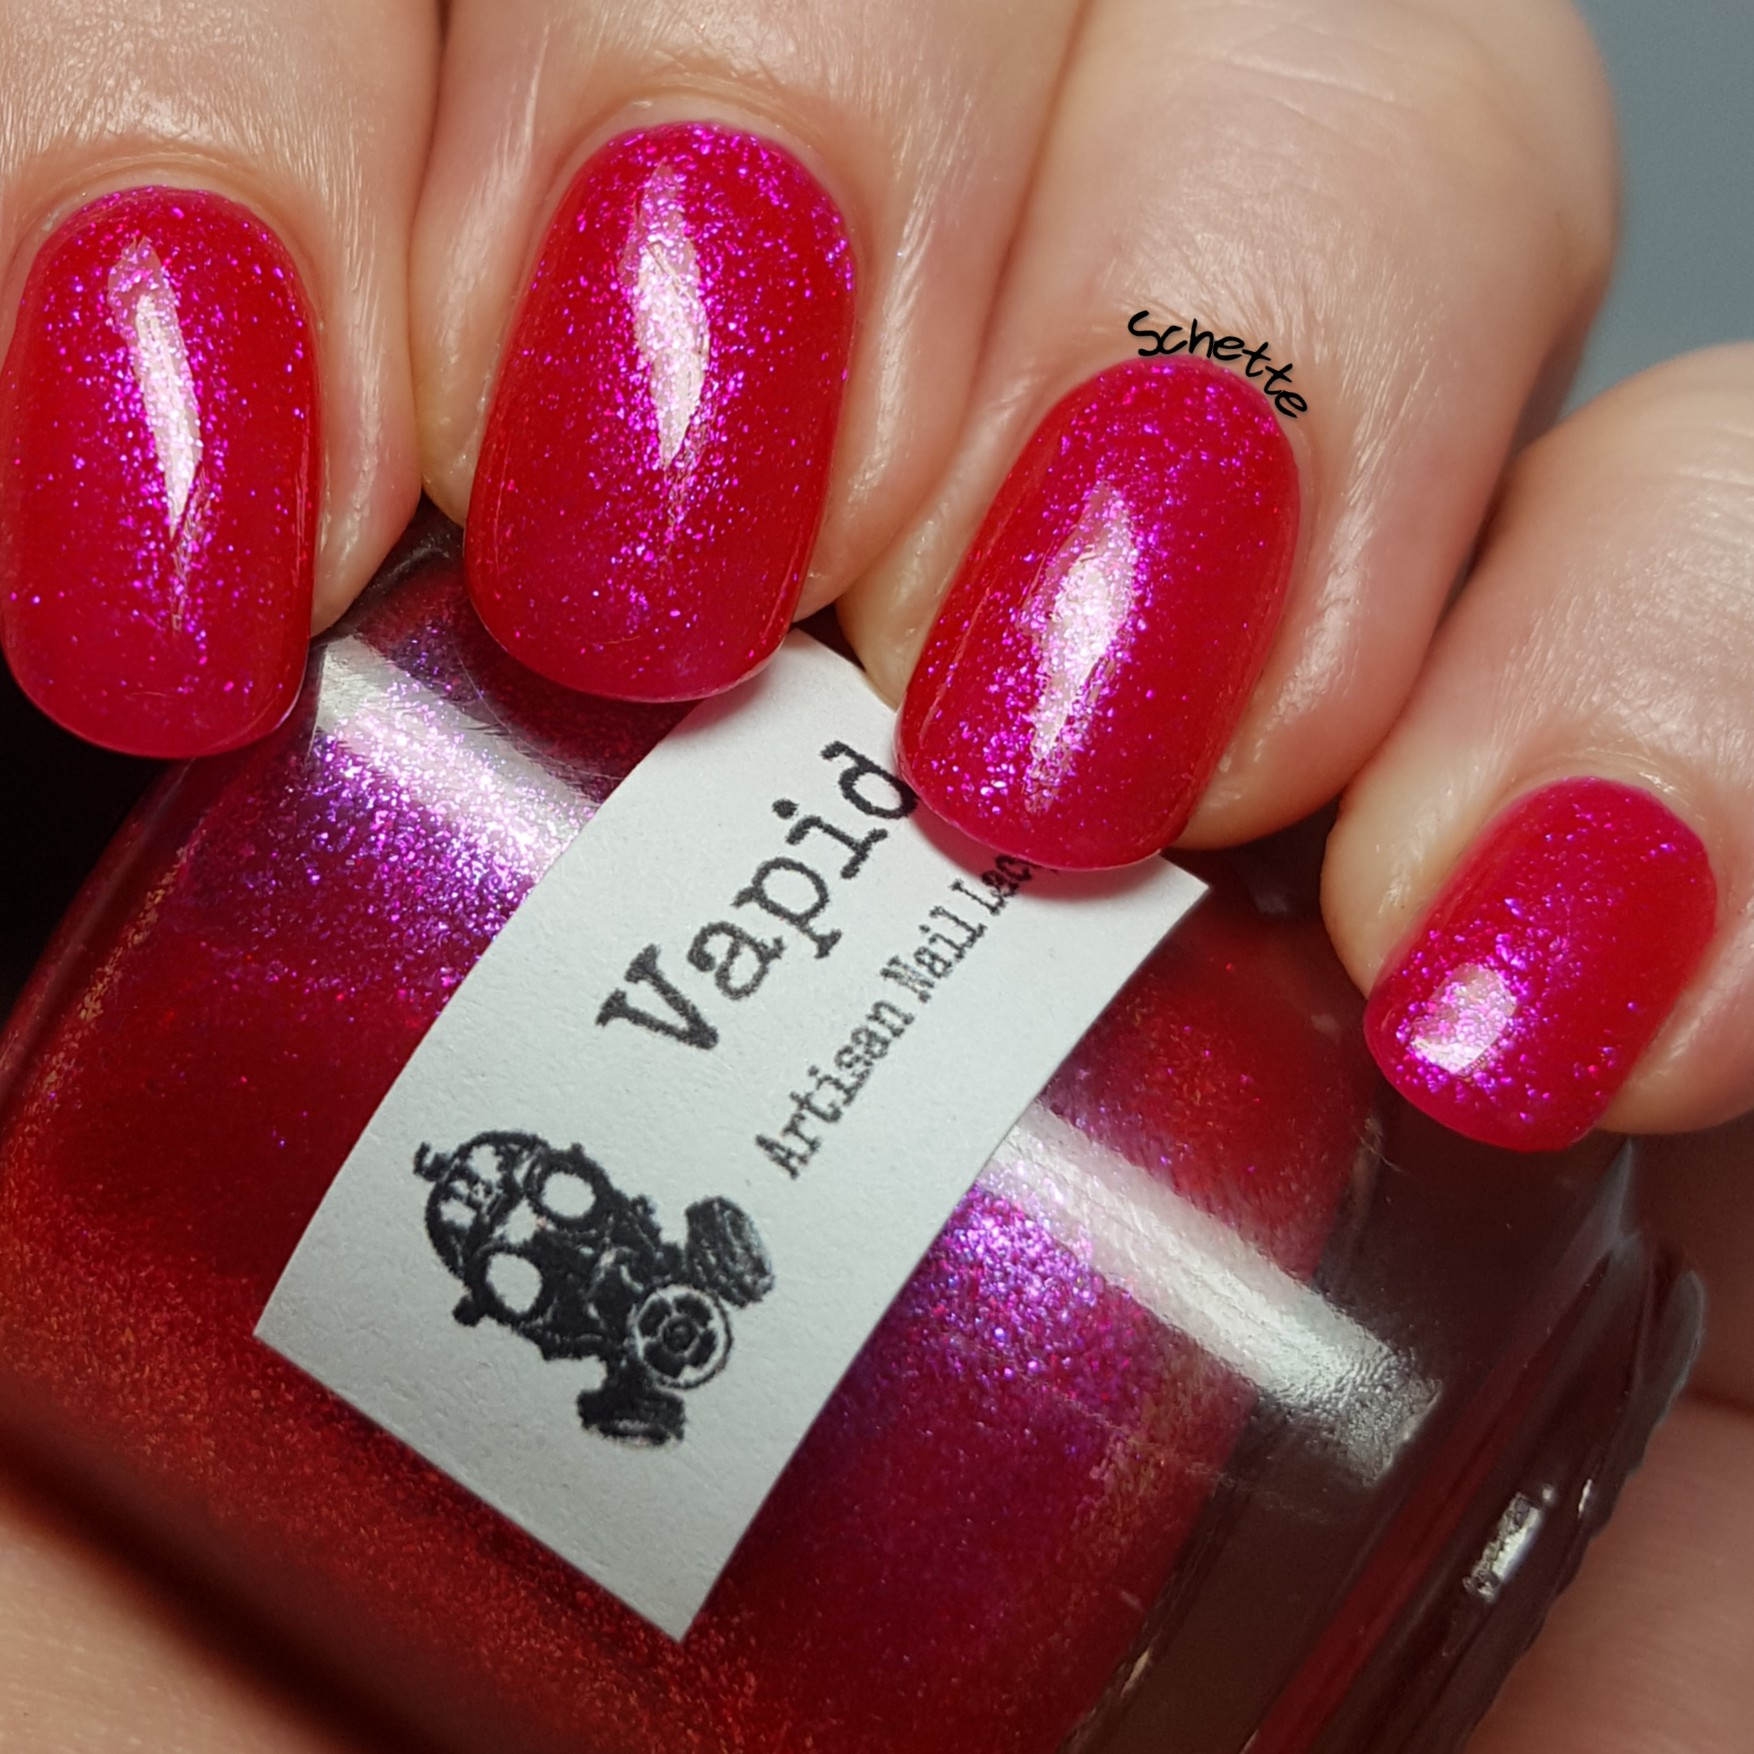 Vapid Lacquer - Trash can punch